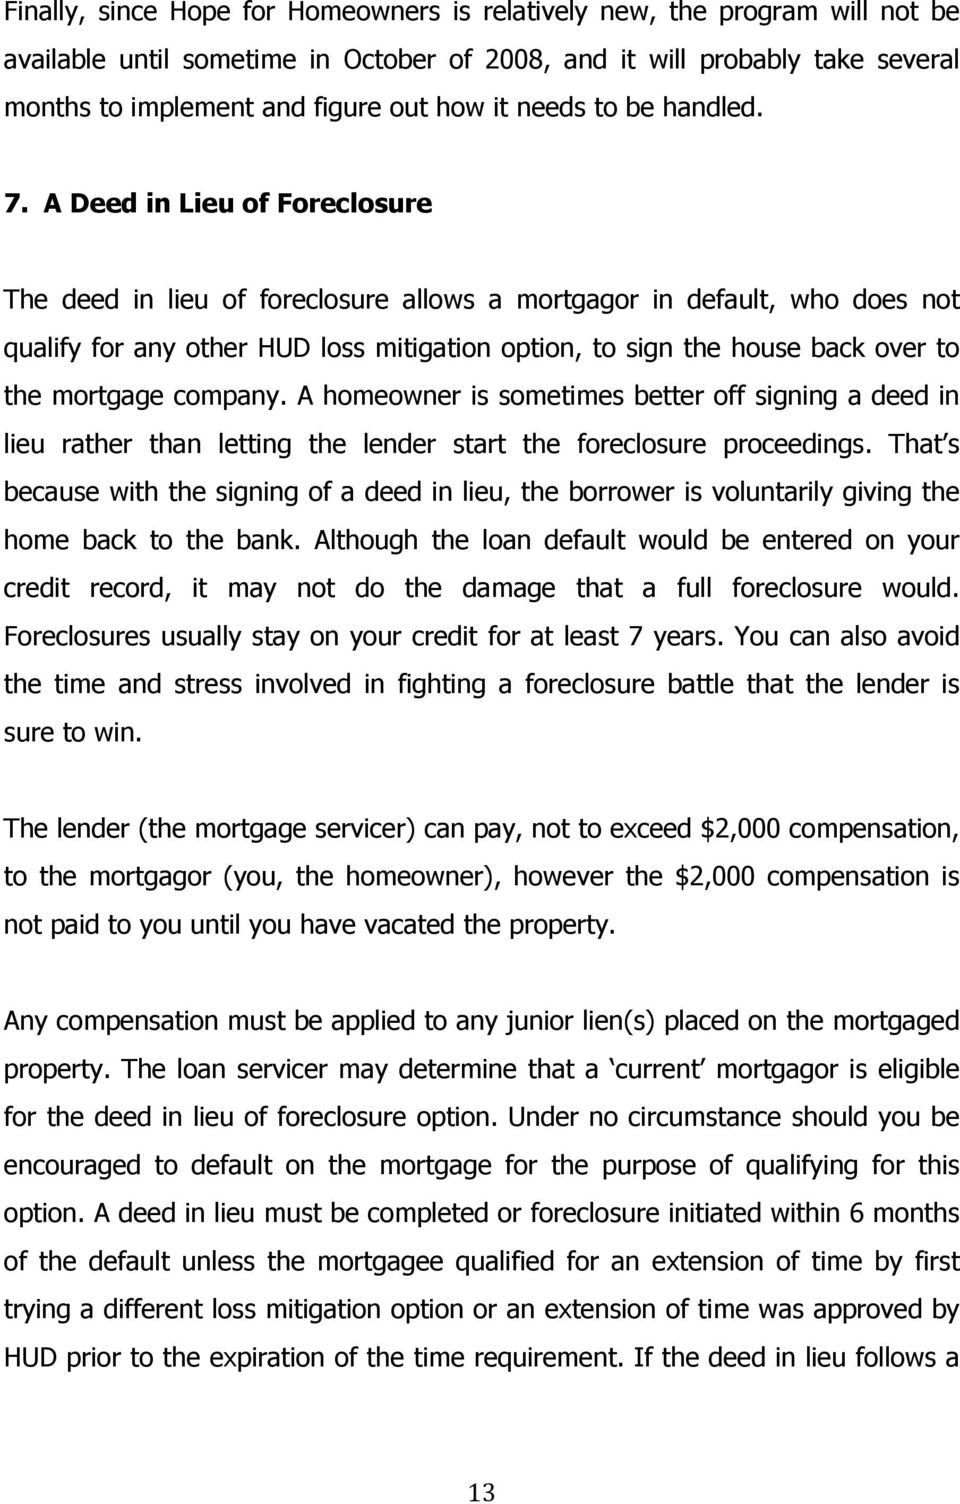 A Deed in Lieu of Foreclosure The deed in lieu of foreclosure allows a mortgagor in default, who does not qualify for any other HUD loss mitigation option, to sign the house back over to the mortgage